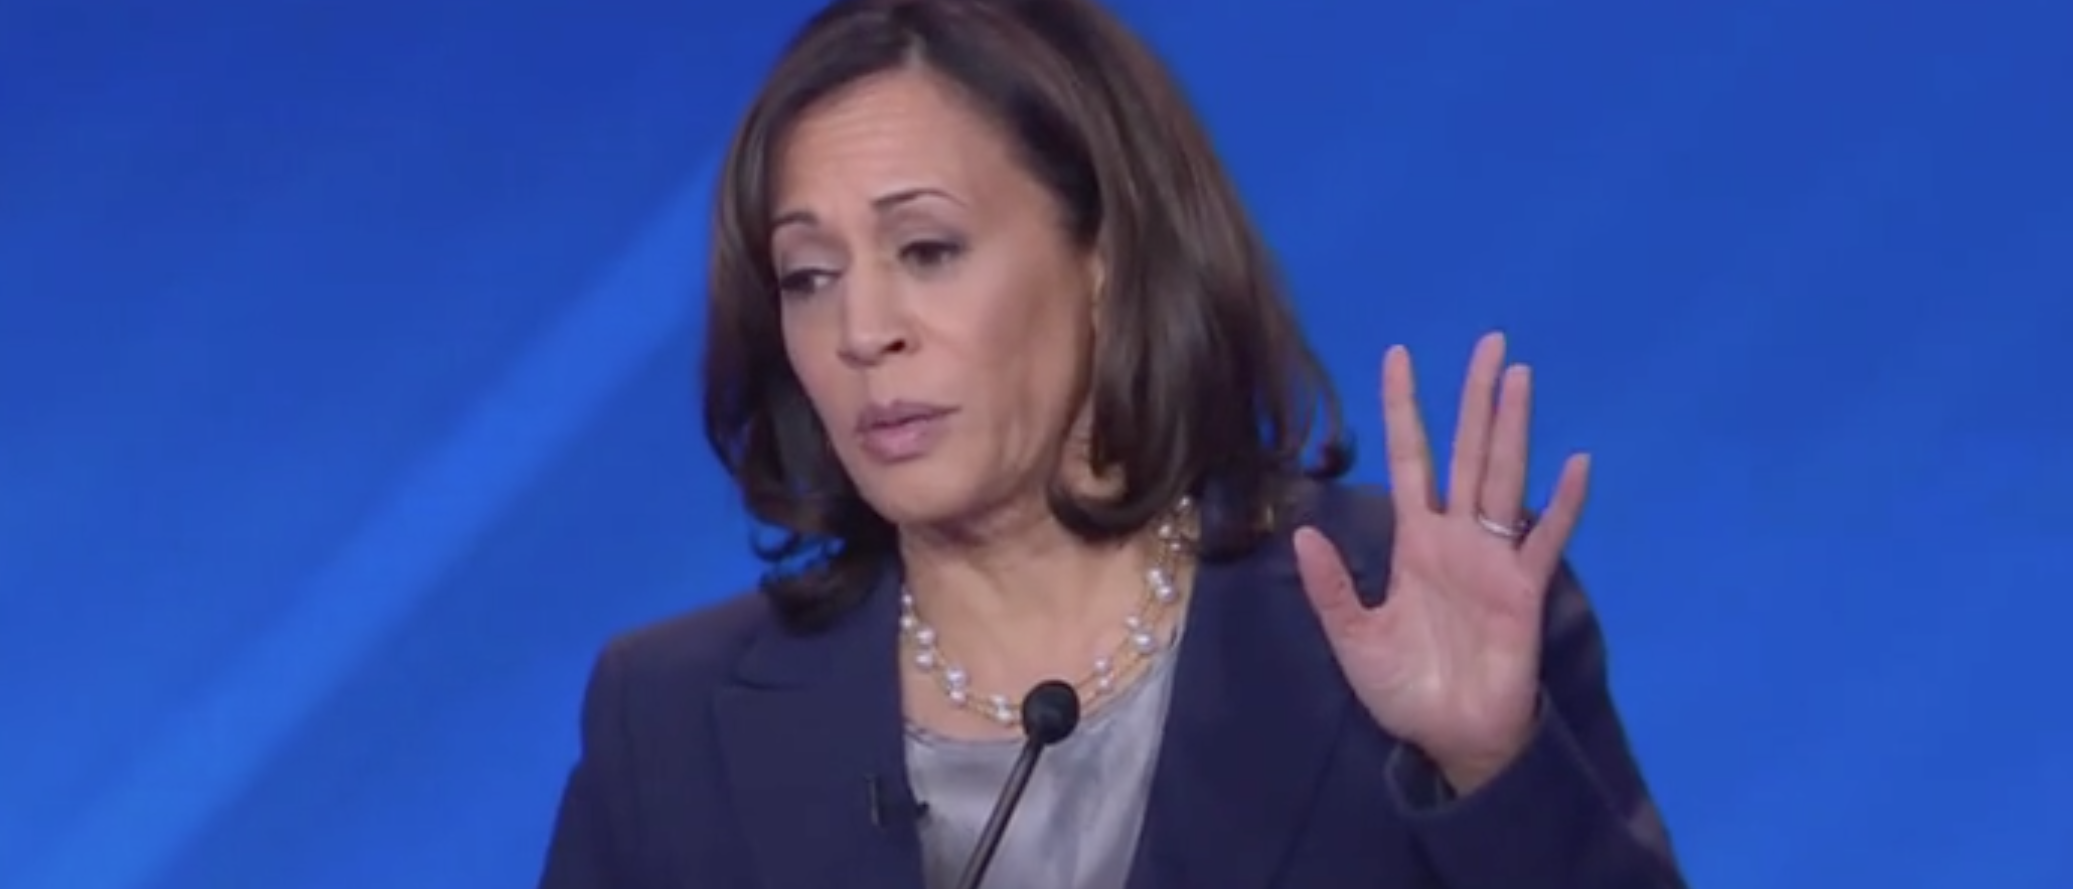 Harris Calls Trump A 'Small Dude,' Stephanopoulos Doesn't 'Take The Bait'